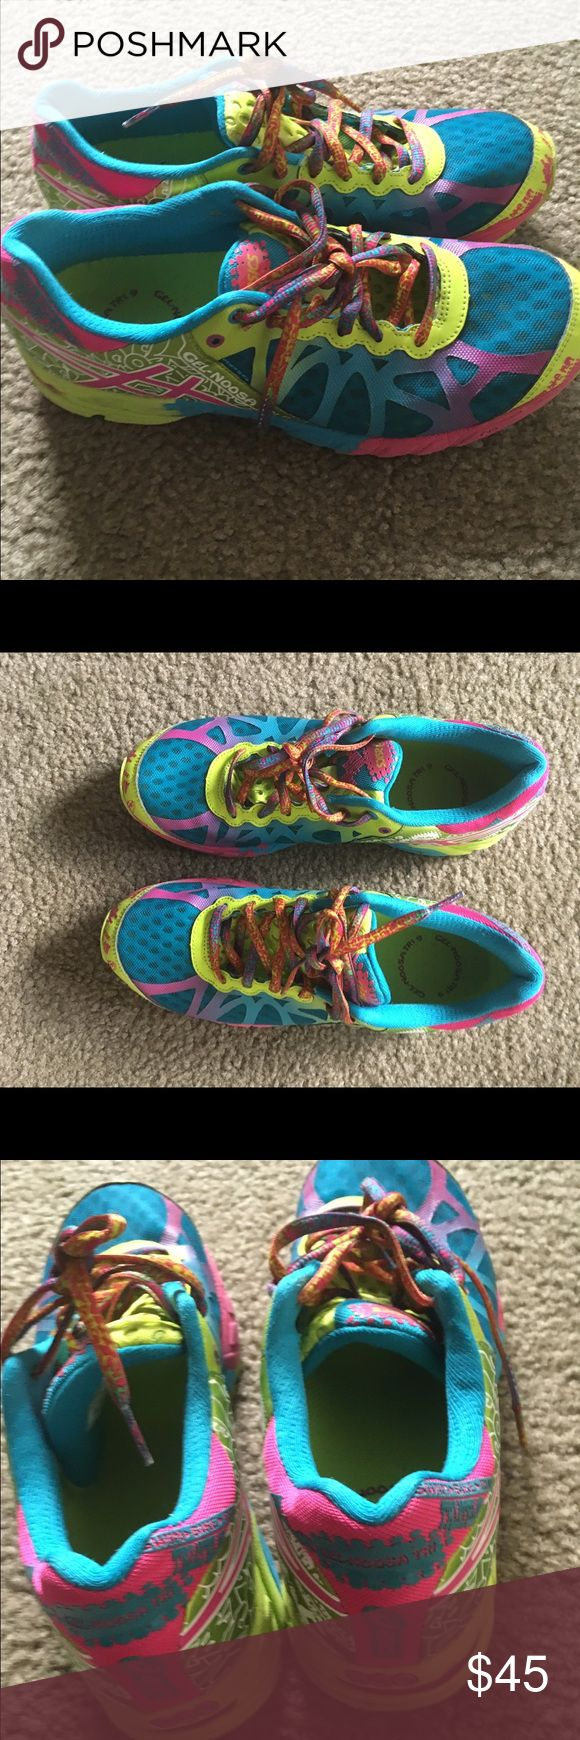 Asics gel noosa tri 9 neon running shoes sneakers The Asics Gel-Noosa Tri 9 trainer is specially engineered for triathlons and Ironman competition. Designed for breathability while still keeping your feet dry and comfortable with elastic laces for quick transitions.  The Asics Gel-Noosa Tri 9 is designed with an open mesh upper for breathability so your feet stay dry and comfortable. Plus the seamless upper means you can wear them barefoot at the end of your event. Worn by a non smoker size…